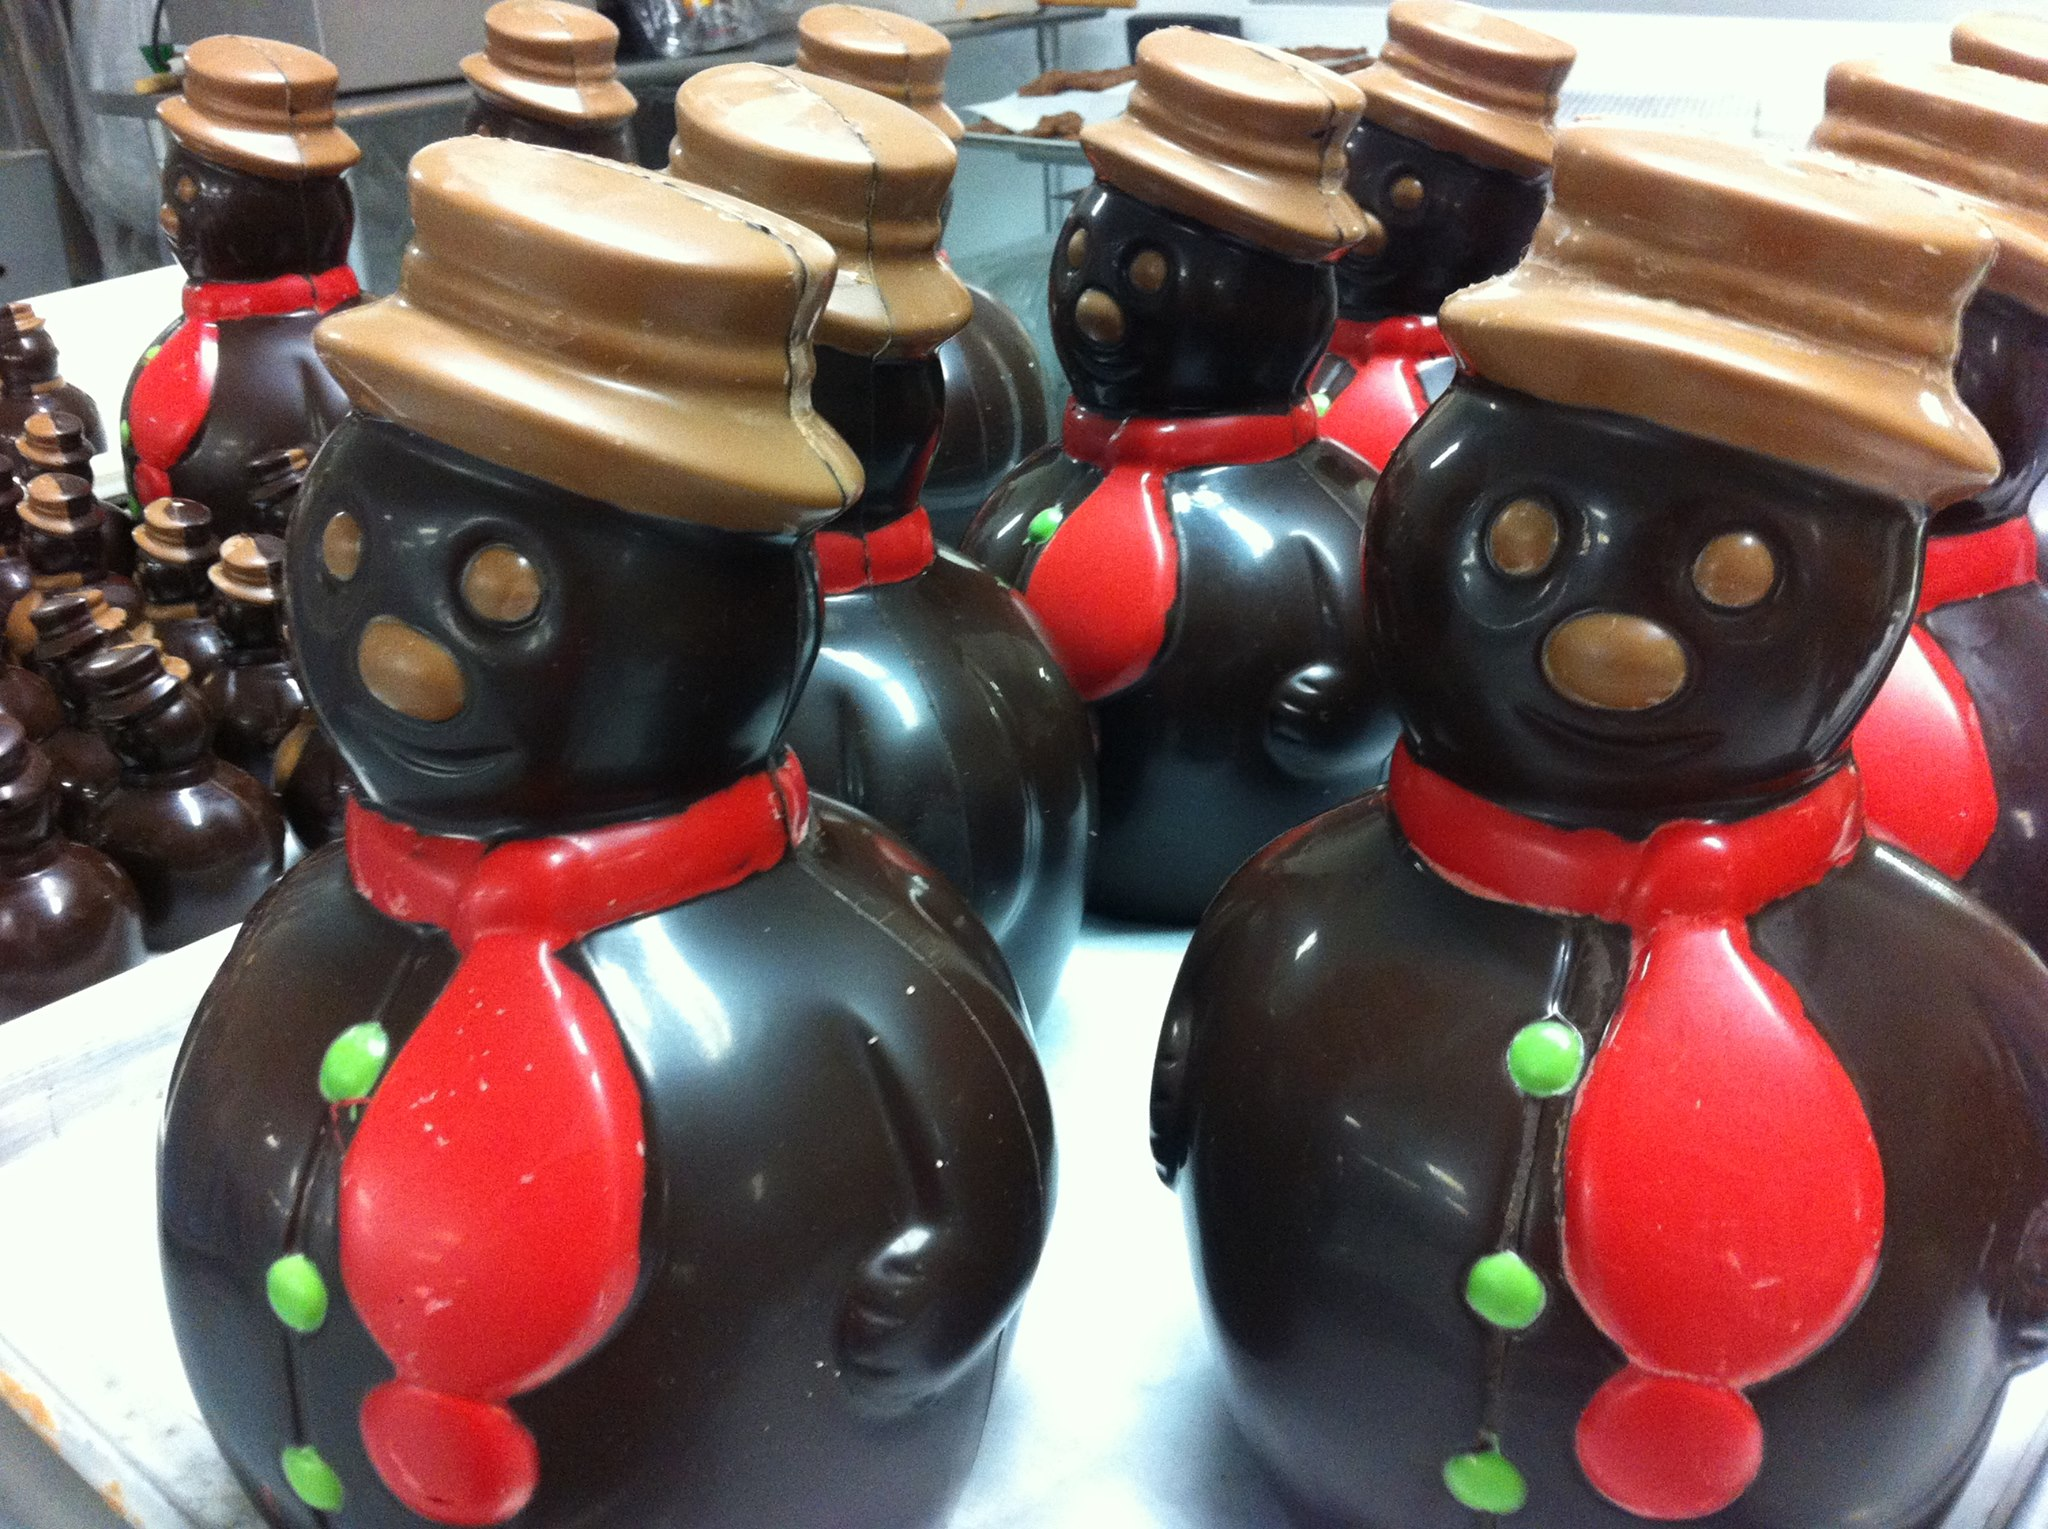 Chocolate snowmen fro Jacques Torres Chocolate